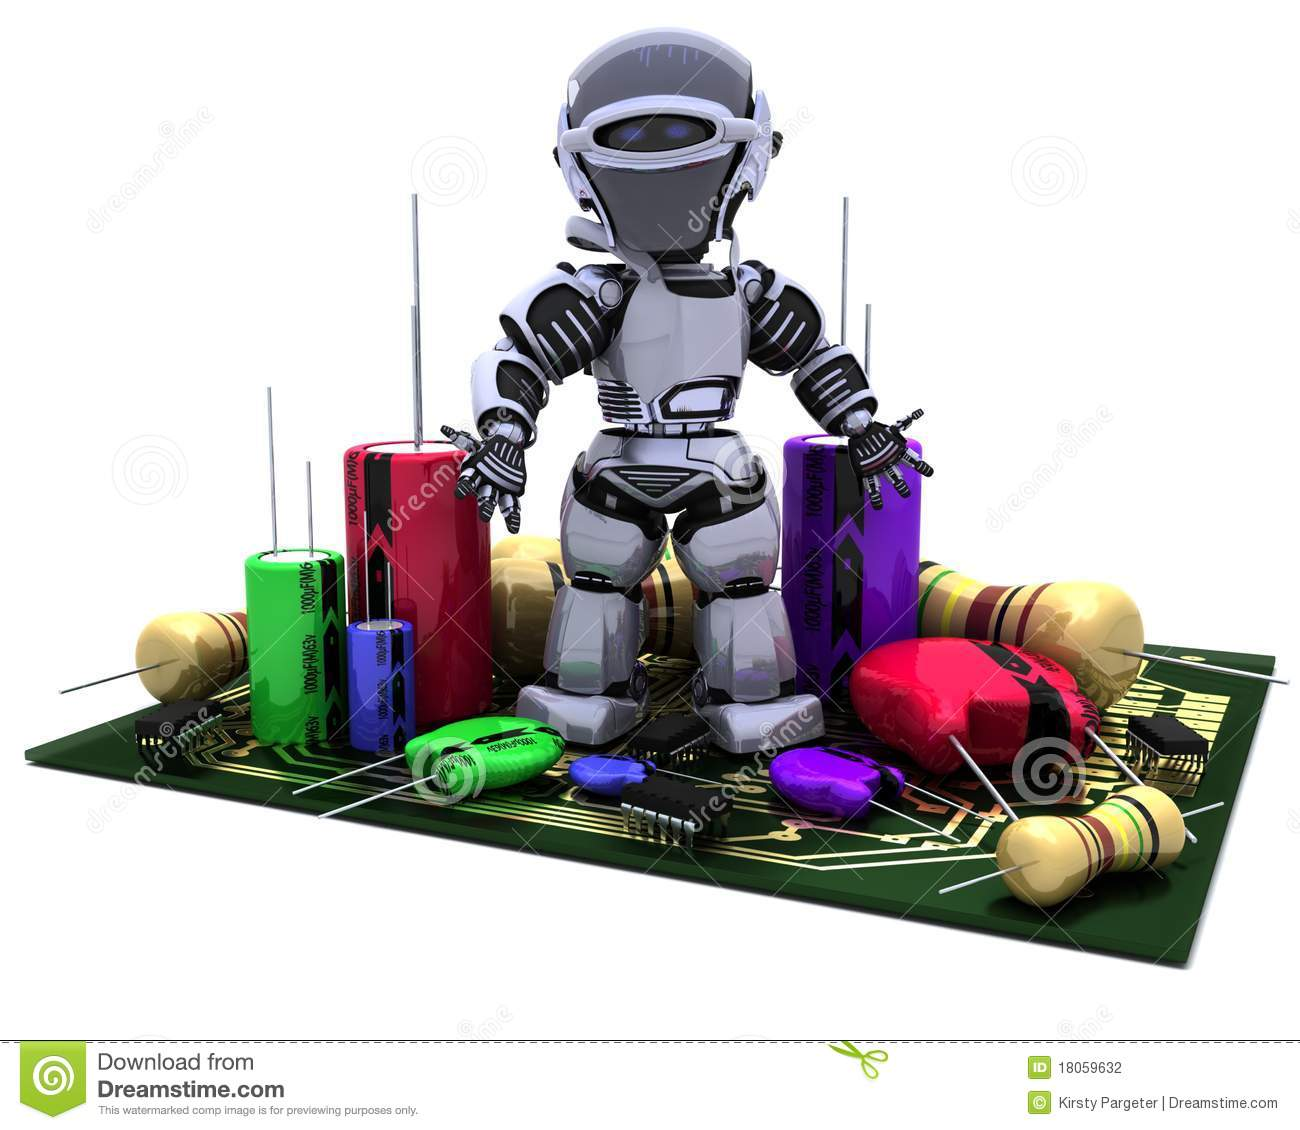 Robot With Capacitors and Resistors